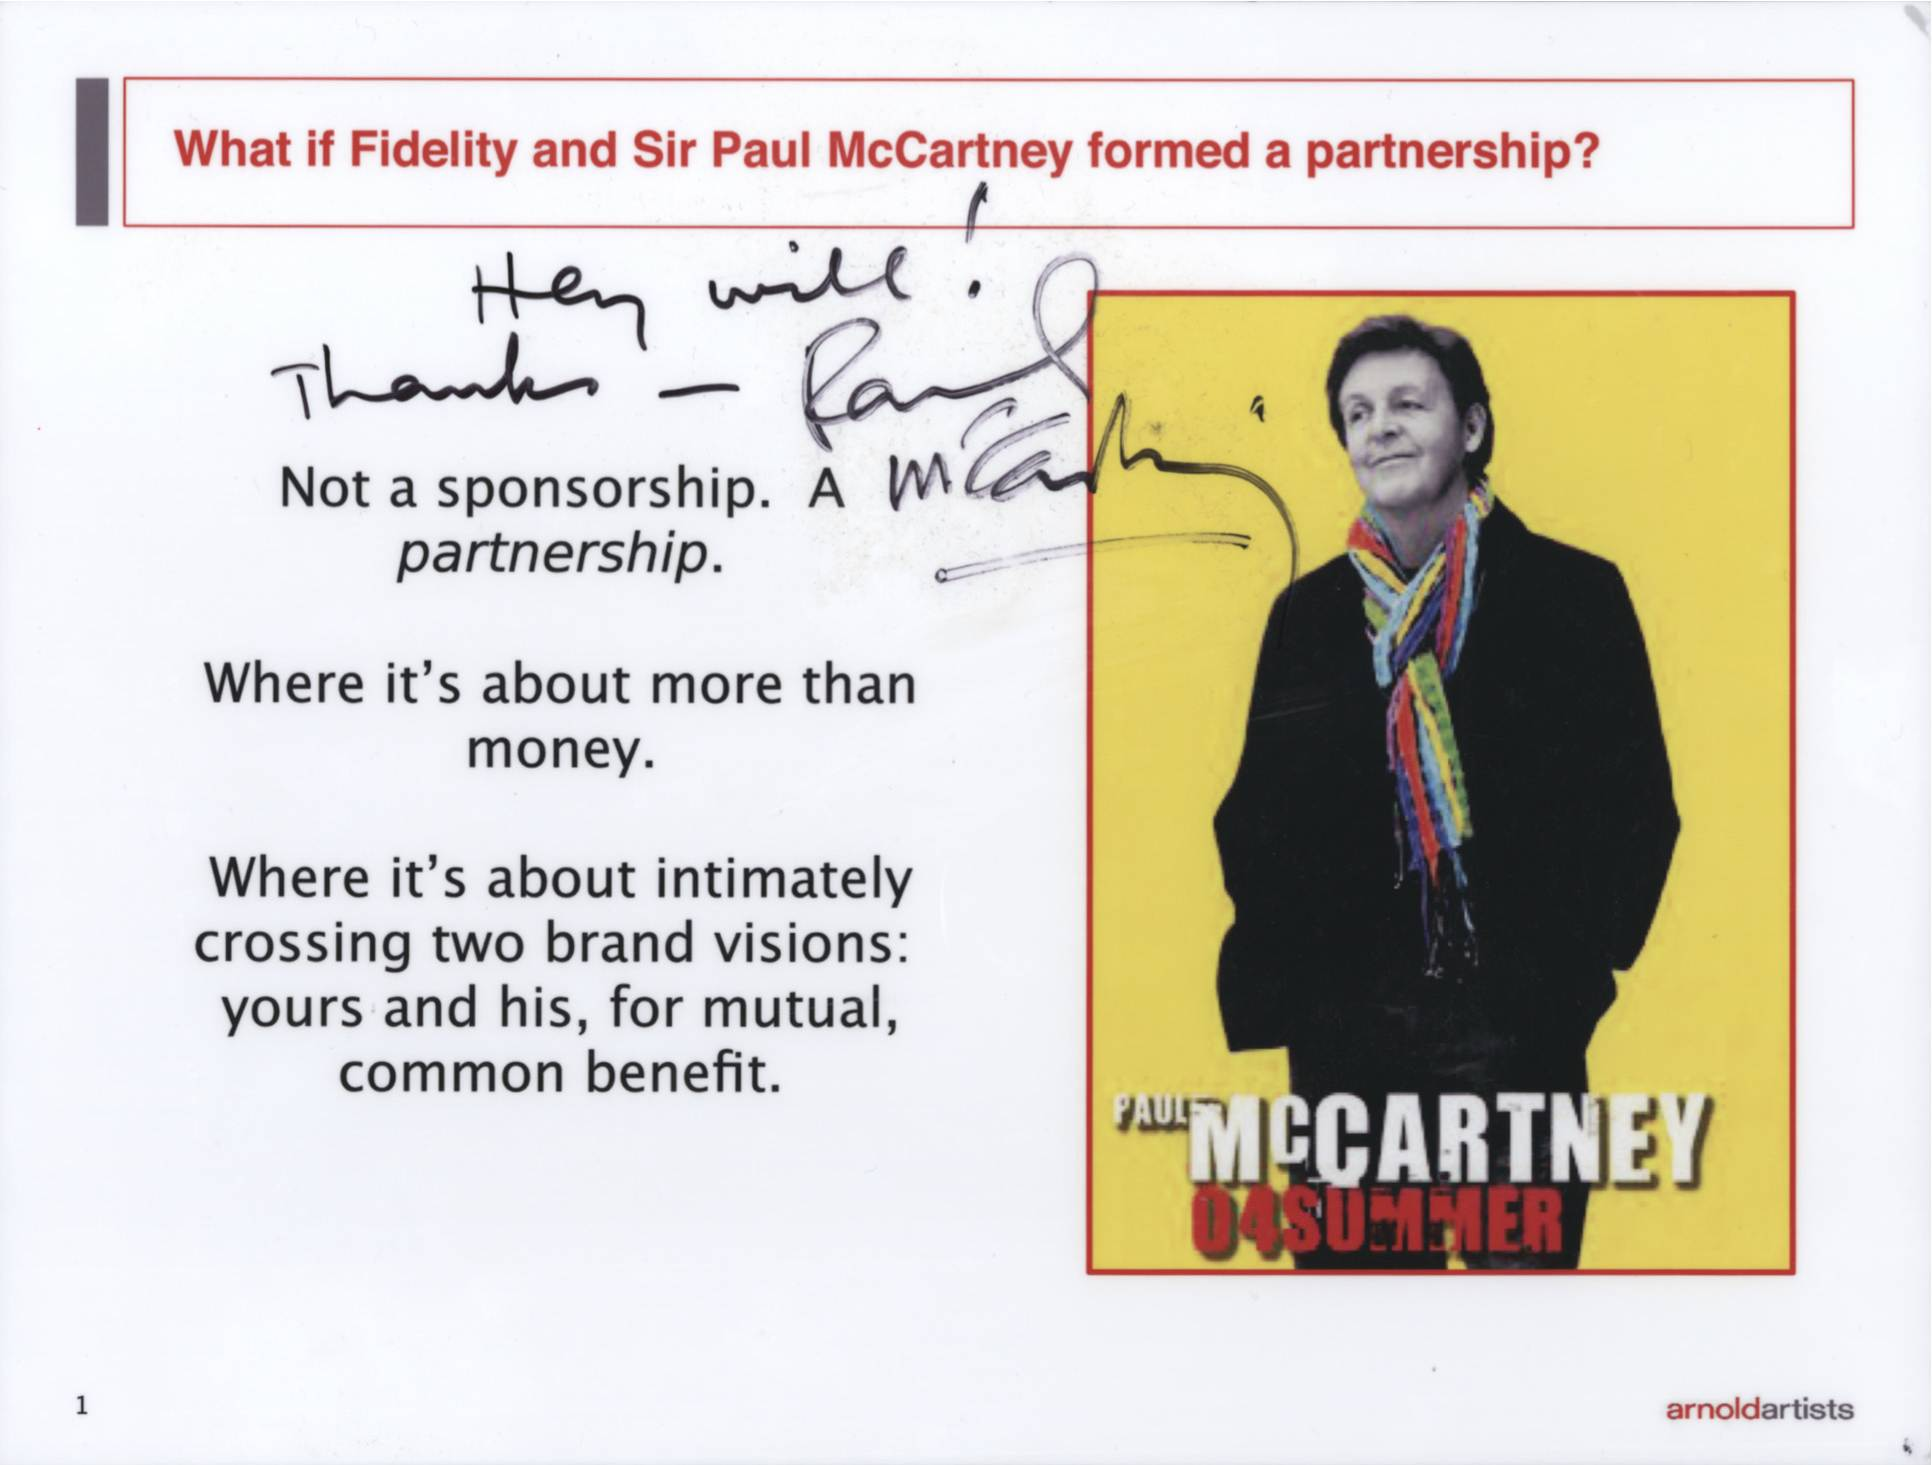 """It was a thrill to realize my musical hero, Paul McCartney, actually signed a PowerPoint slide I wrote on his bahalf. The partnership led to the """"This is Paul"""" campaign for Fidelity, as seen below."""